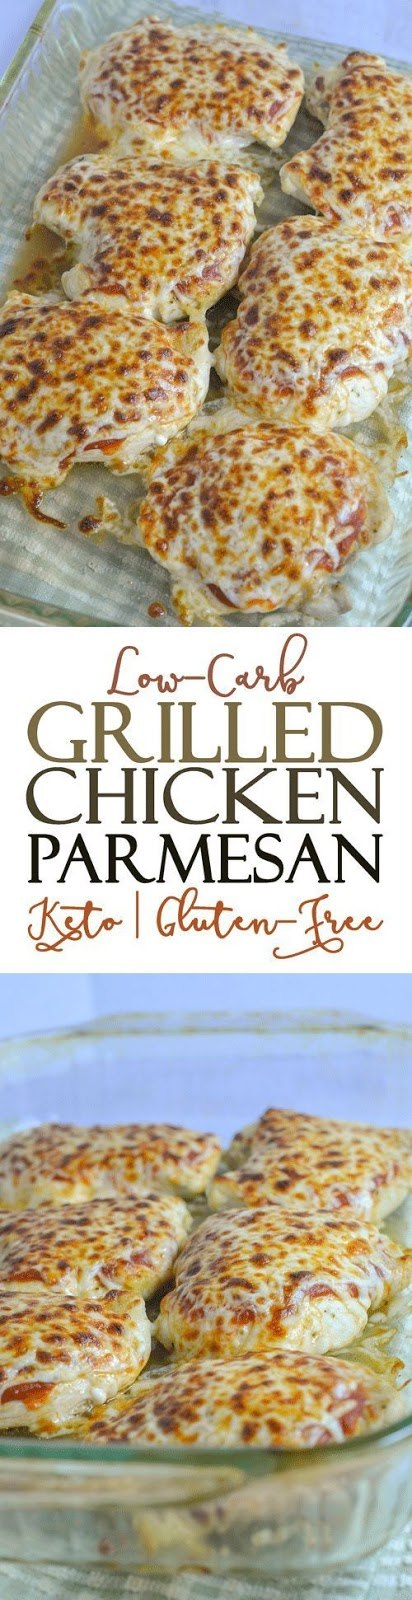 GLUTEN-FREE GRILLED CHICKEN PARMESAN (LOW-CARB) #chicken recipes